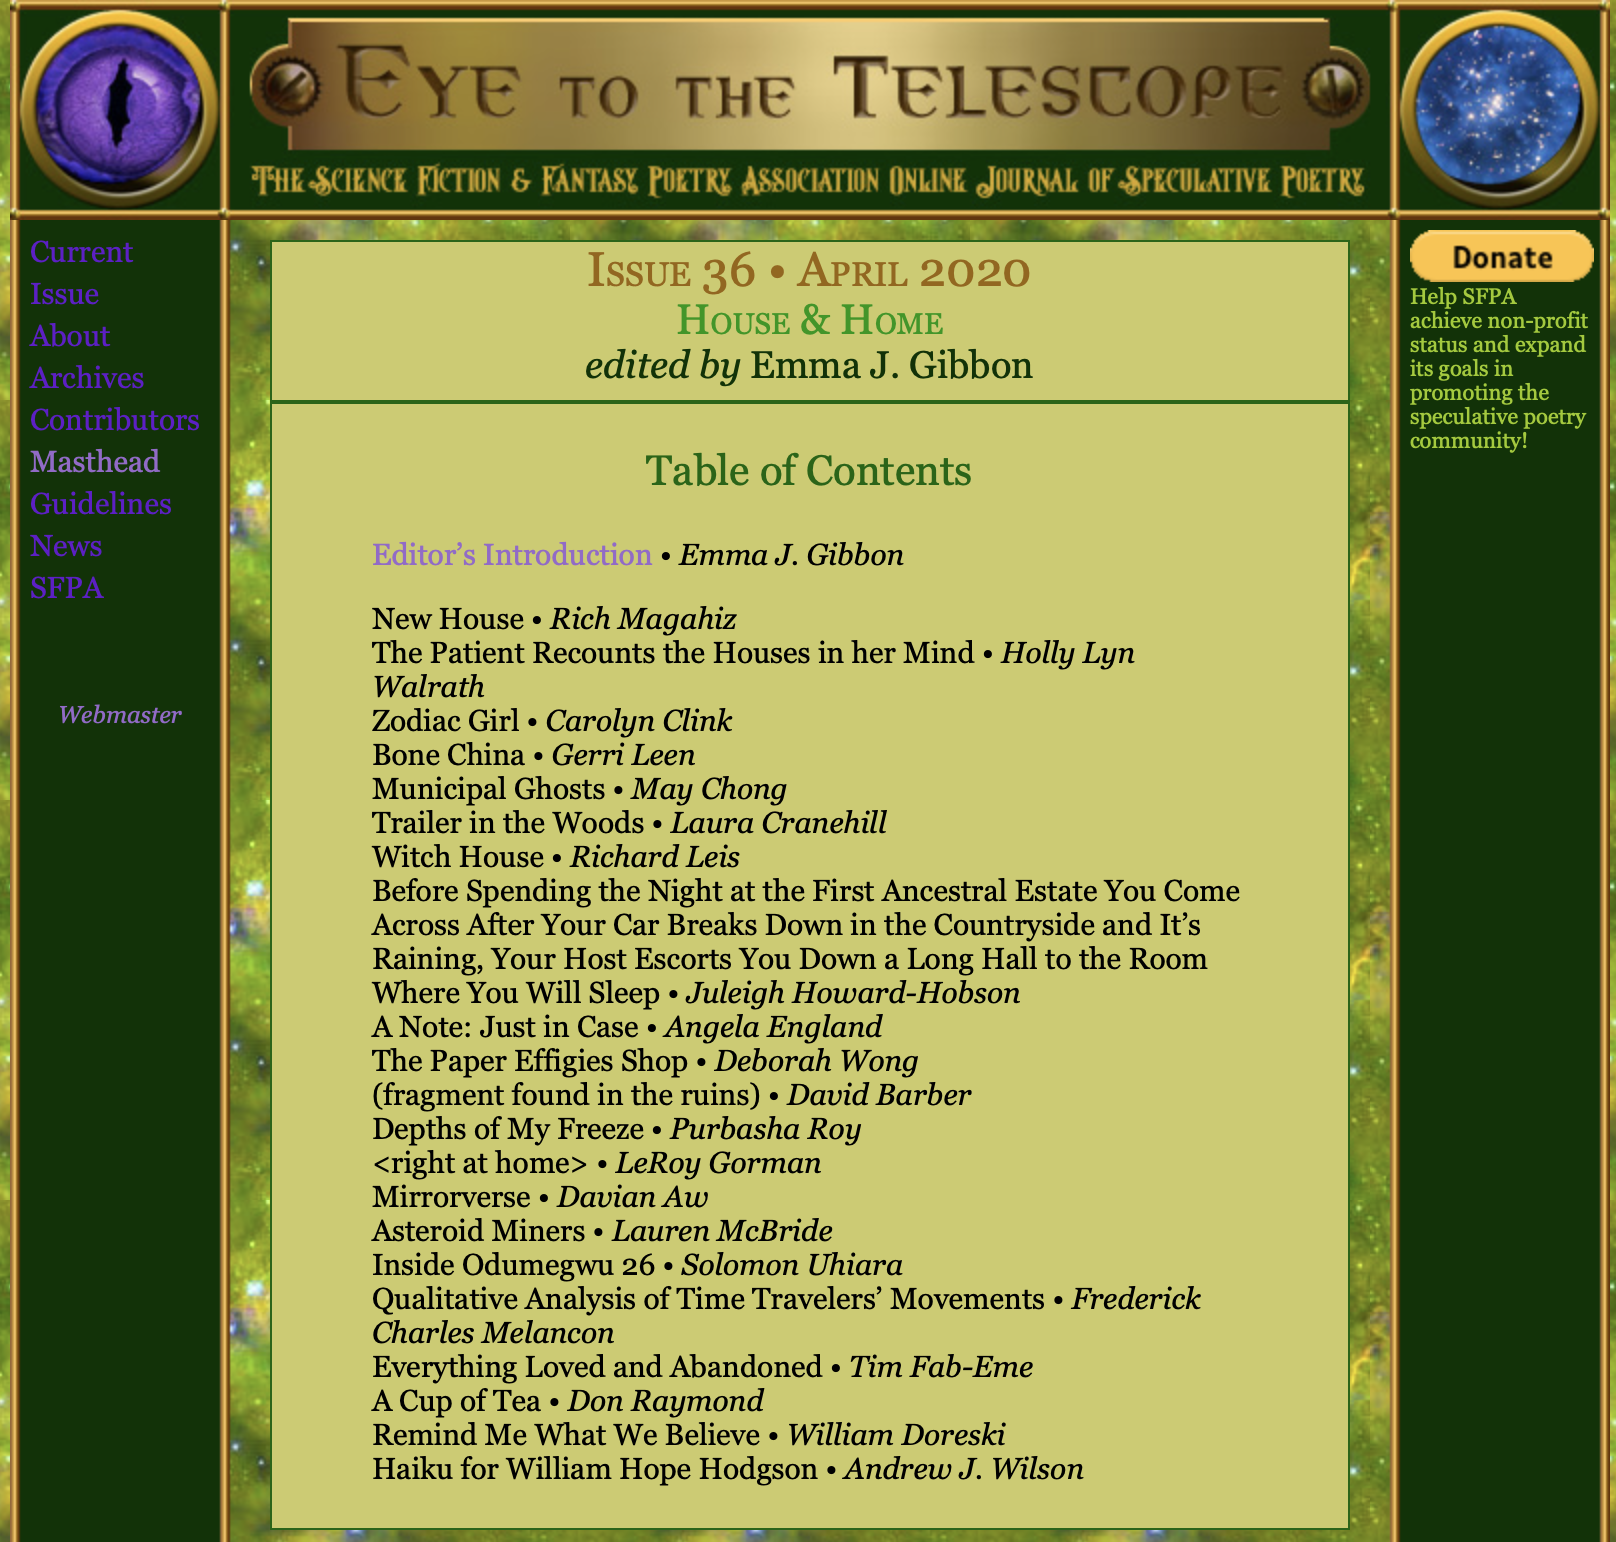 Screen shot of table of contents of Issue 36 of online journal Eye to the Telescope